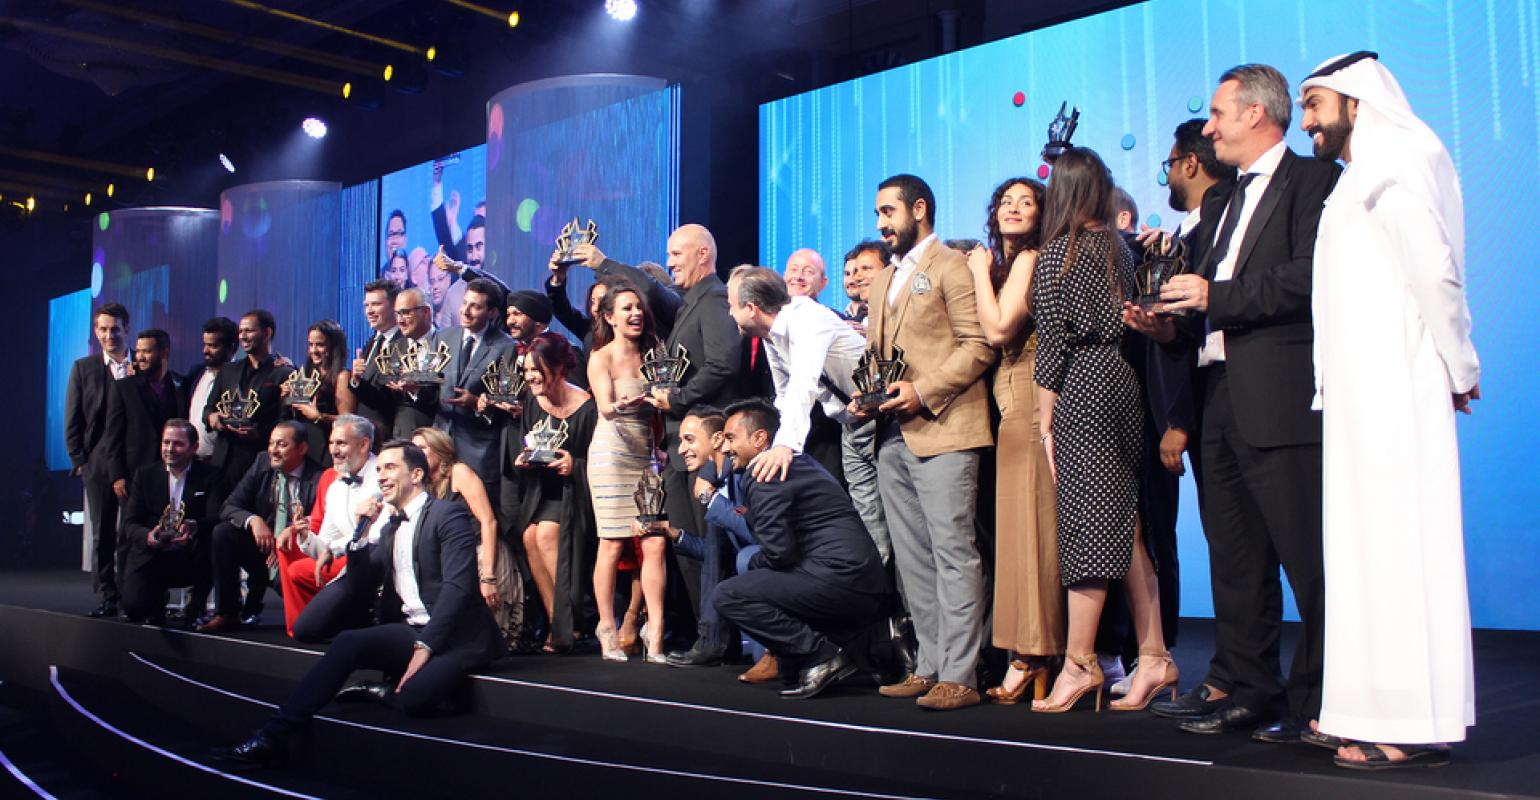 MESE Awards Announces 2019 Shortlist | Special Events